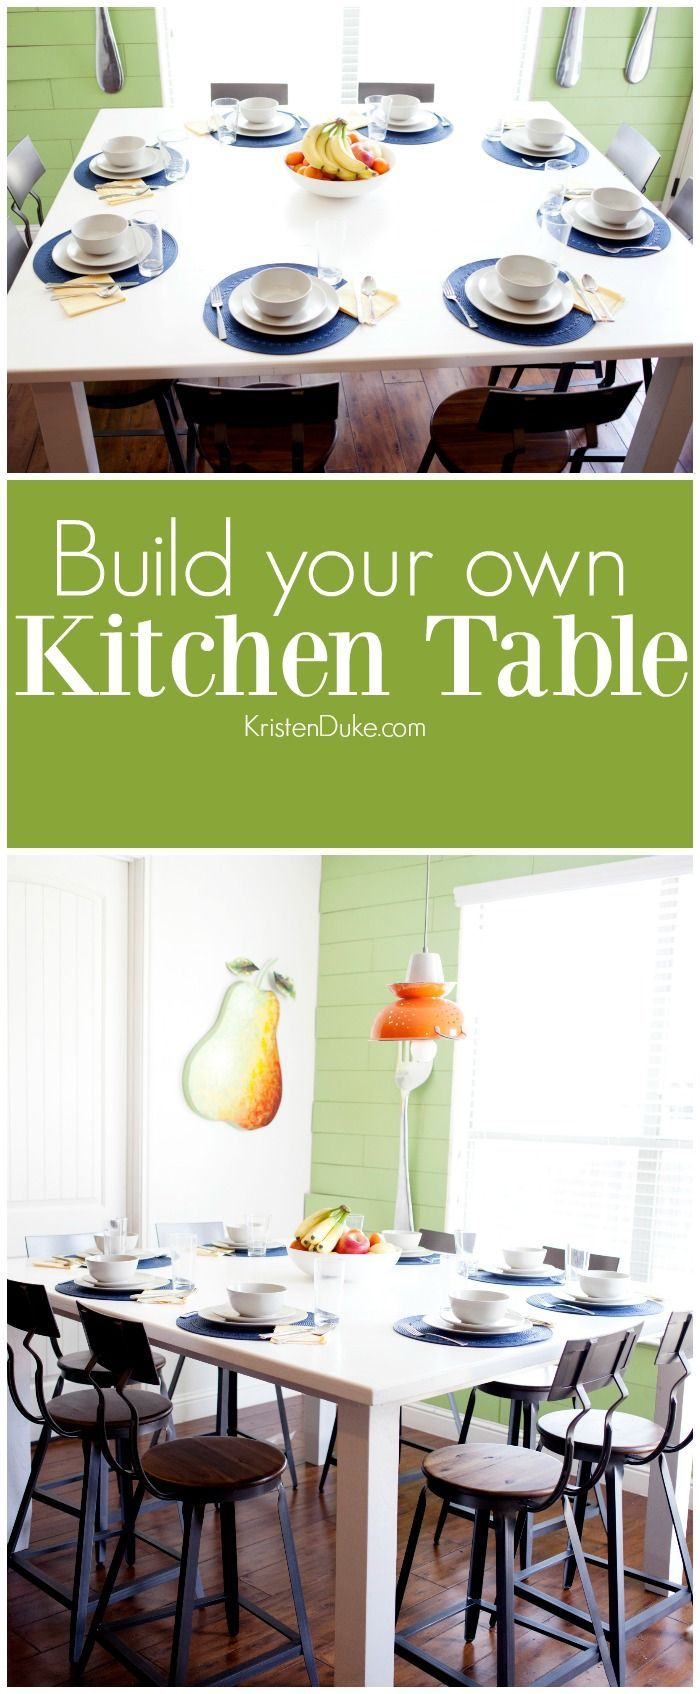 Build your own kitchen table | DIY table plans | DIY | Kitchen | #sponsored | ww...